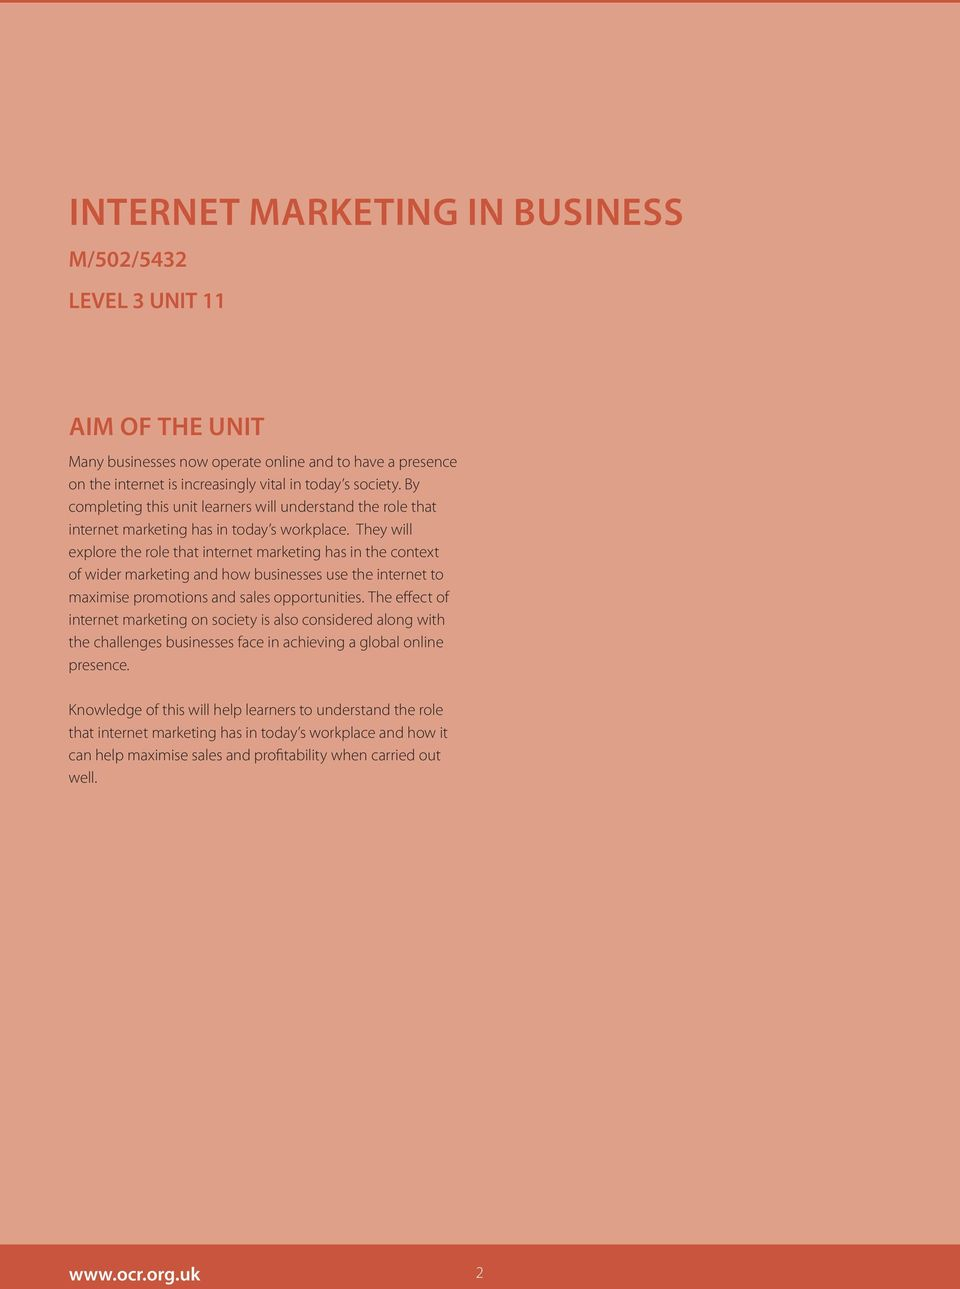 They will explore the role that internet marketing has in the context of wider marketing and how businesses use the internet to maximise promotions and sales opportunities.